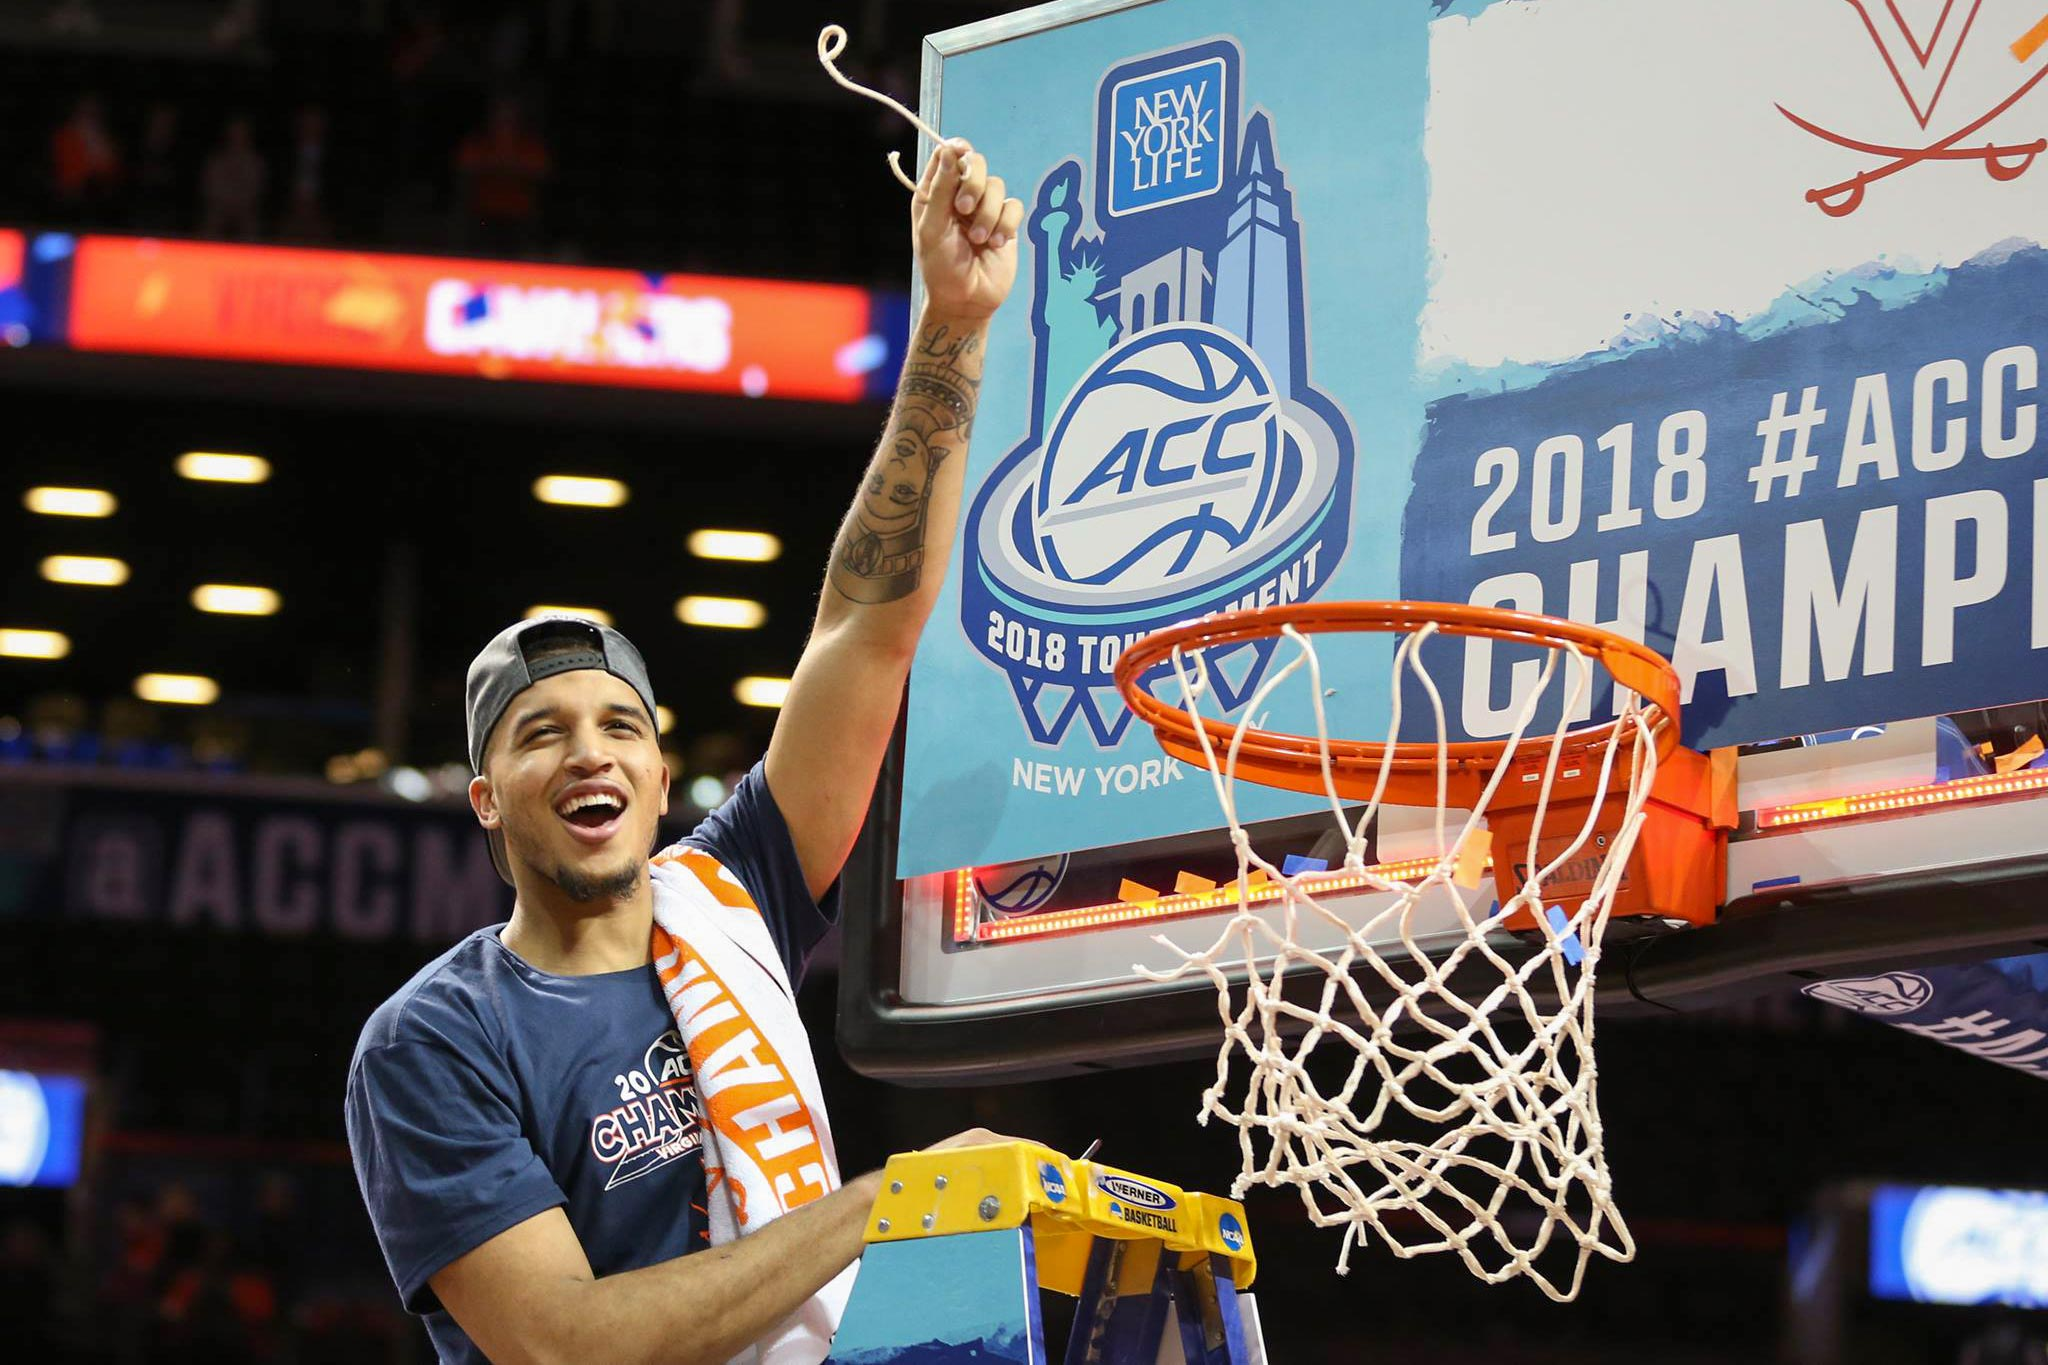 Wilkins helped cut down the nets when the 'Hoos won the 2018 ACC Tournament in Brooklyn.